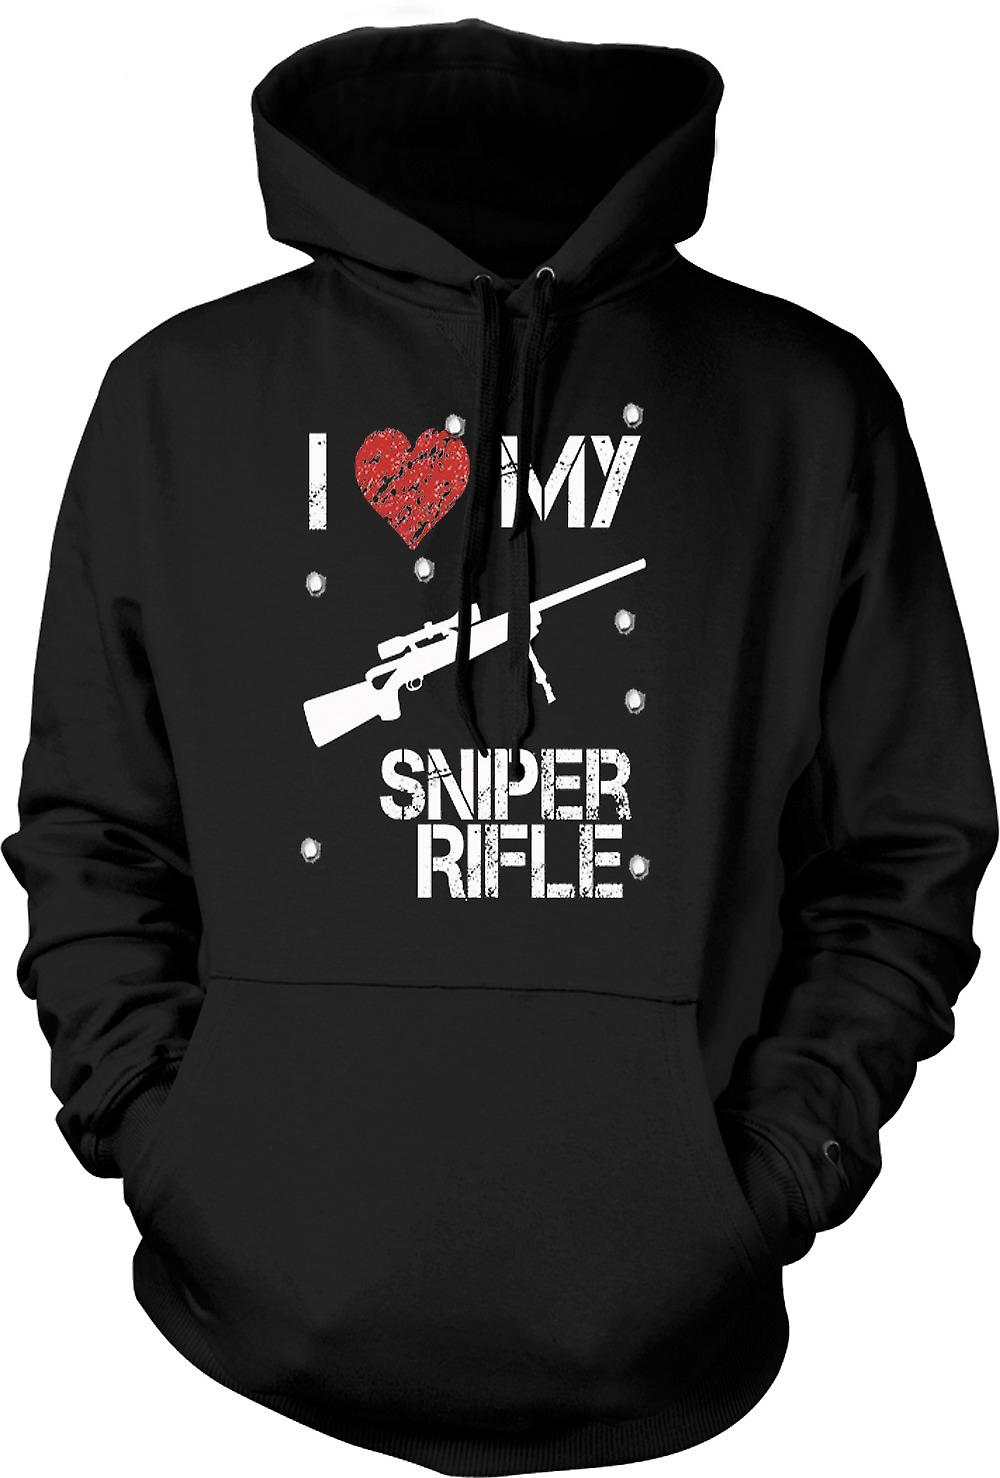 Mens Hoodie - I Love My Sniper Rifle - Funny